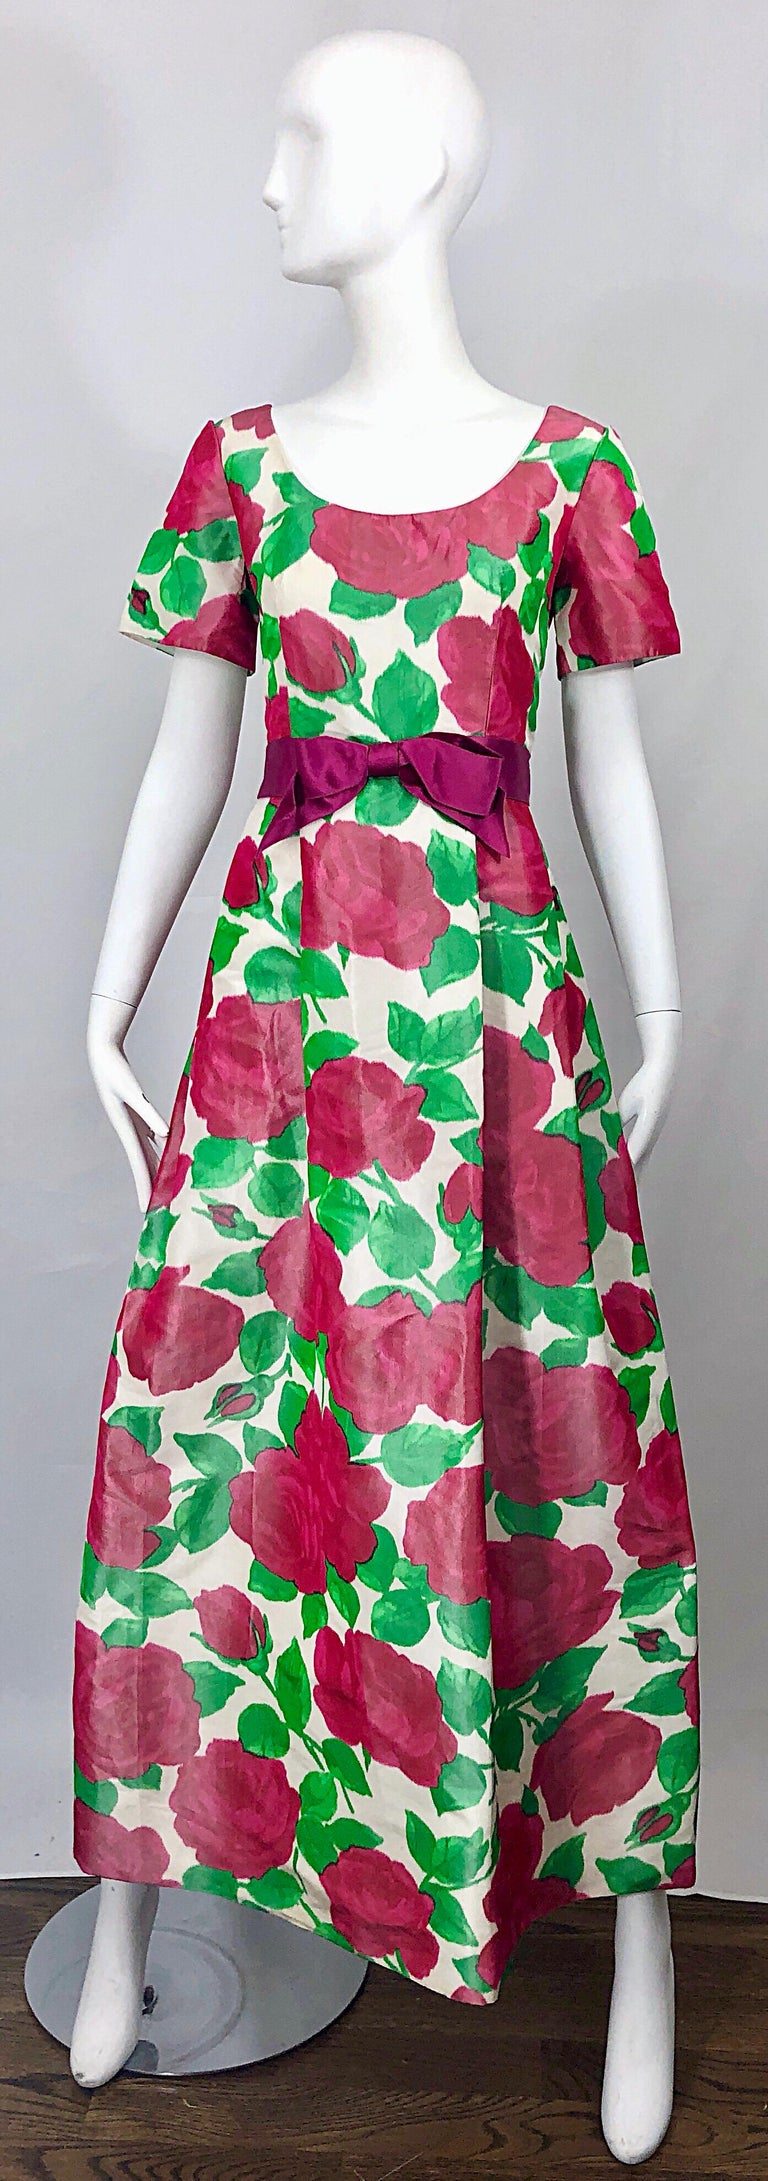 Beautiful vintage RICHILENE for ELIZABETH ARDEN silk taffeta 3-D rose print short sleeve couture gown! Features bold rose prints in vibrant hot pink and green. 1960s / 60s style, with a tailored bodice with a forgiving full bell skirt. Fuchsia silk